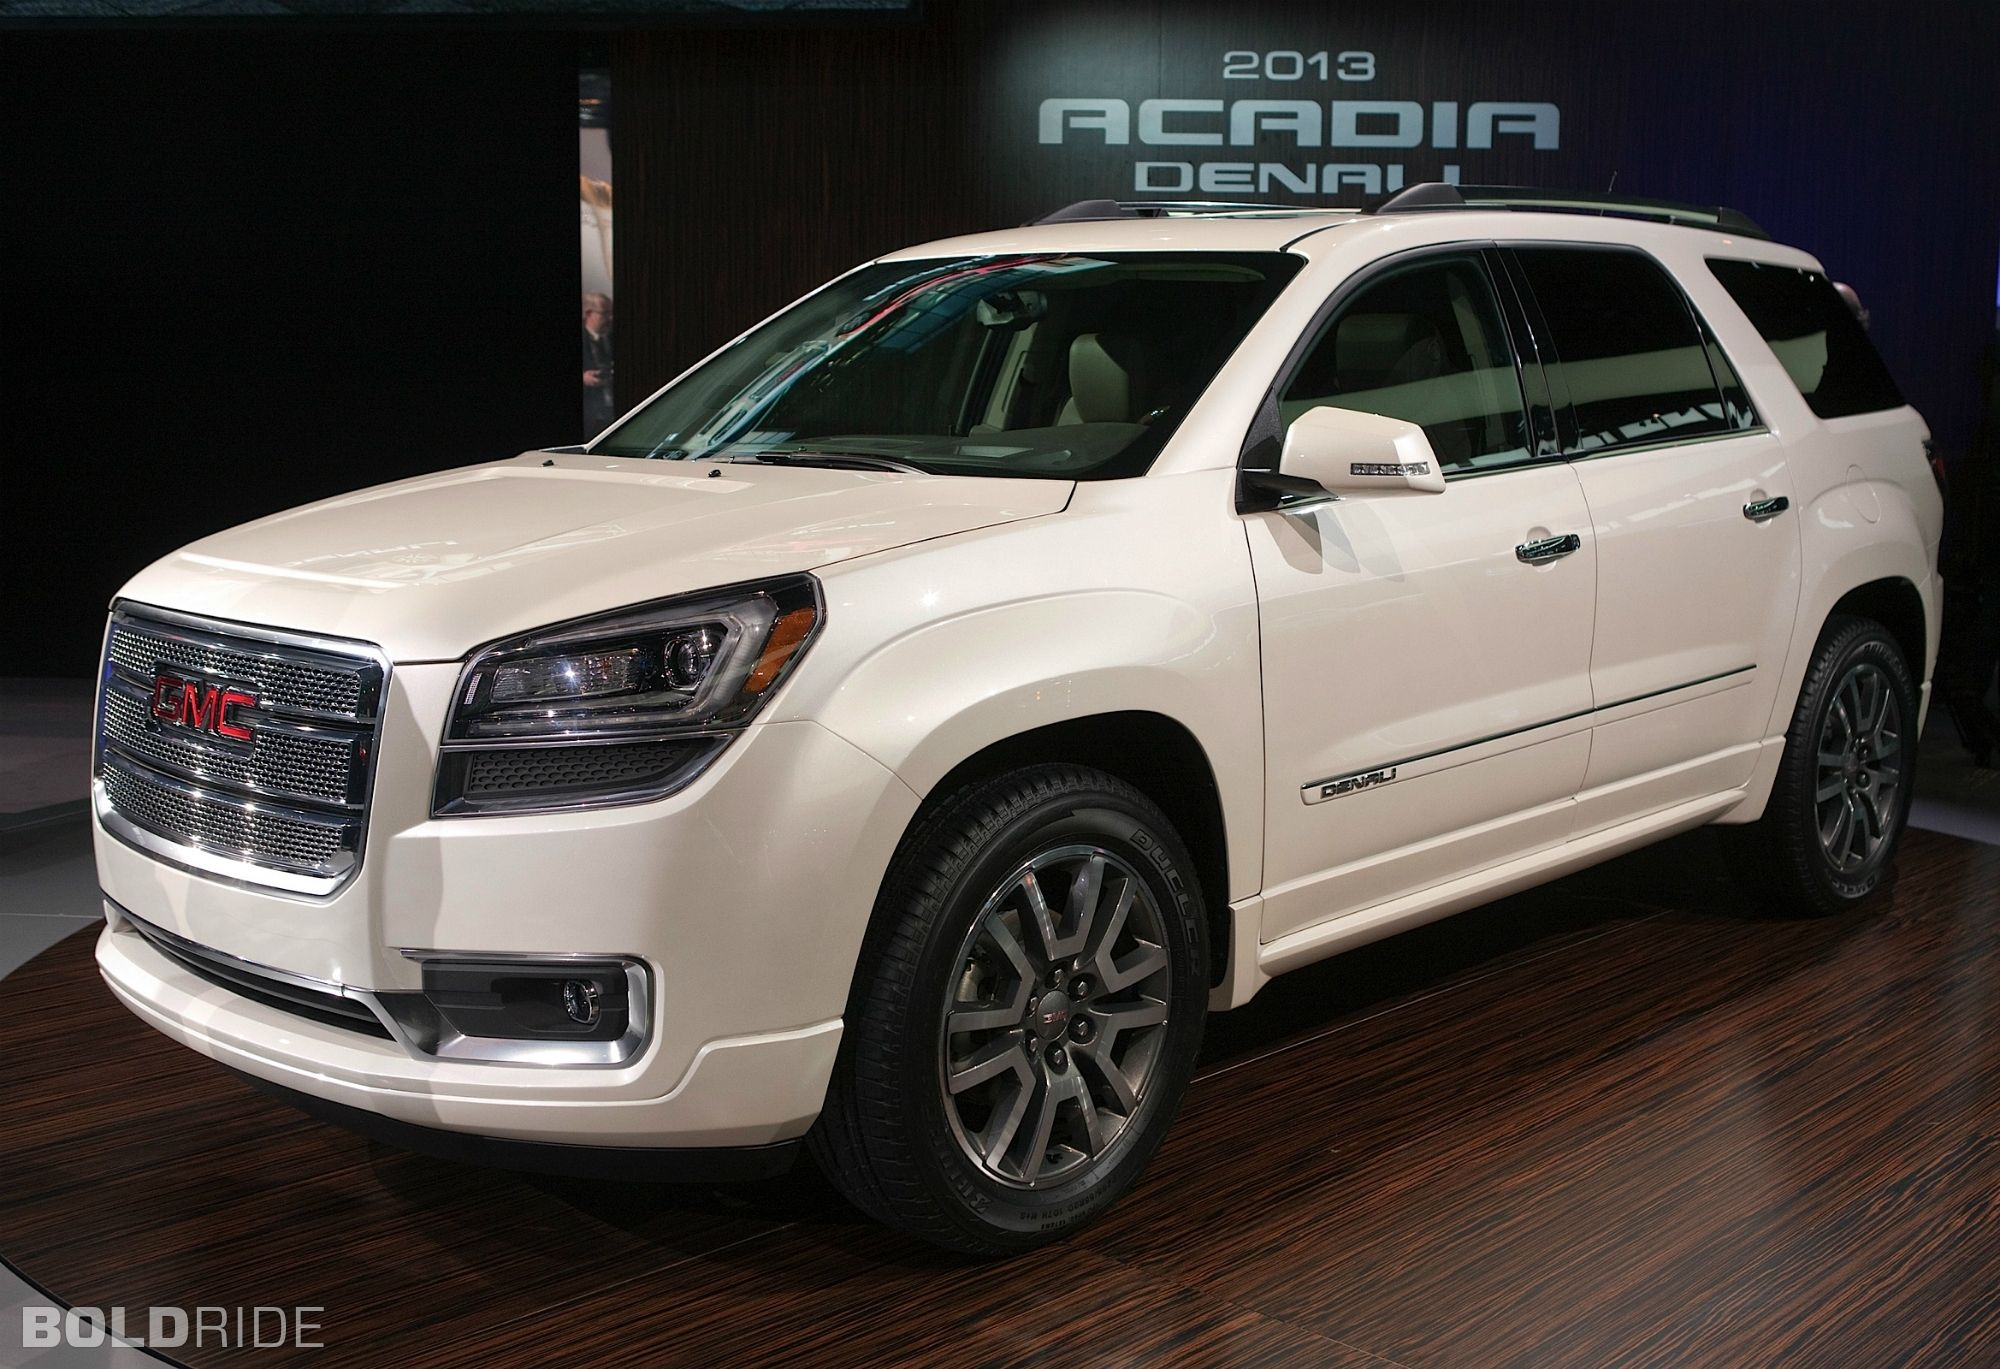 Gmc Acadia Denali 2012 With Images Buick Gmc